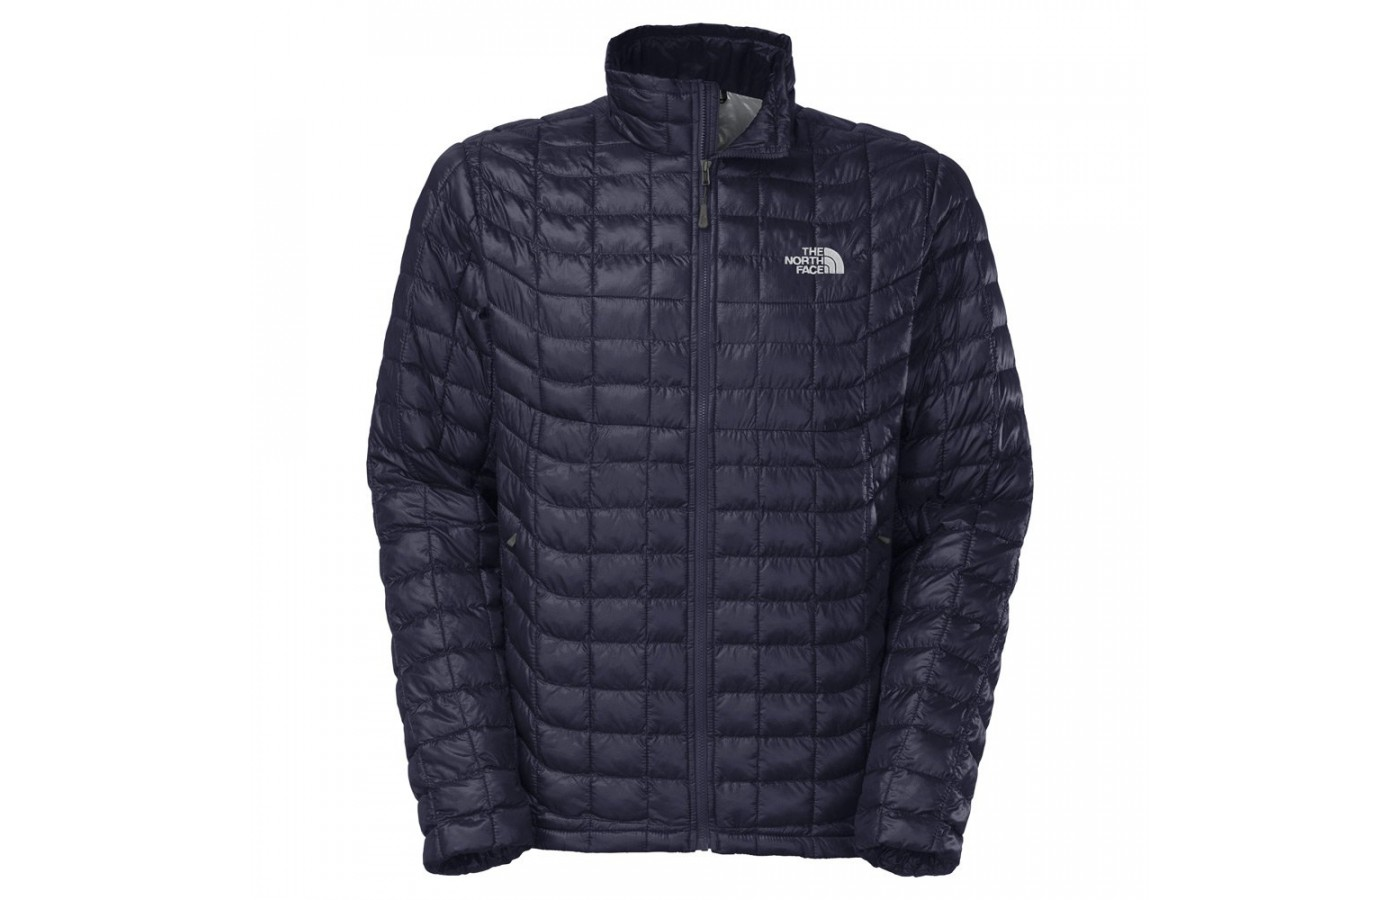 The North Face Thermoball offers 100% Nylon ripstop in order to keep the wearer dry.